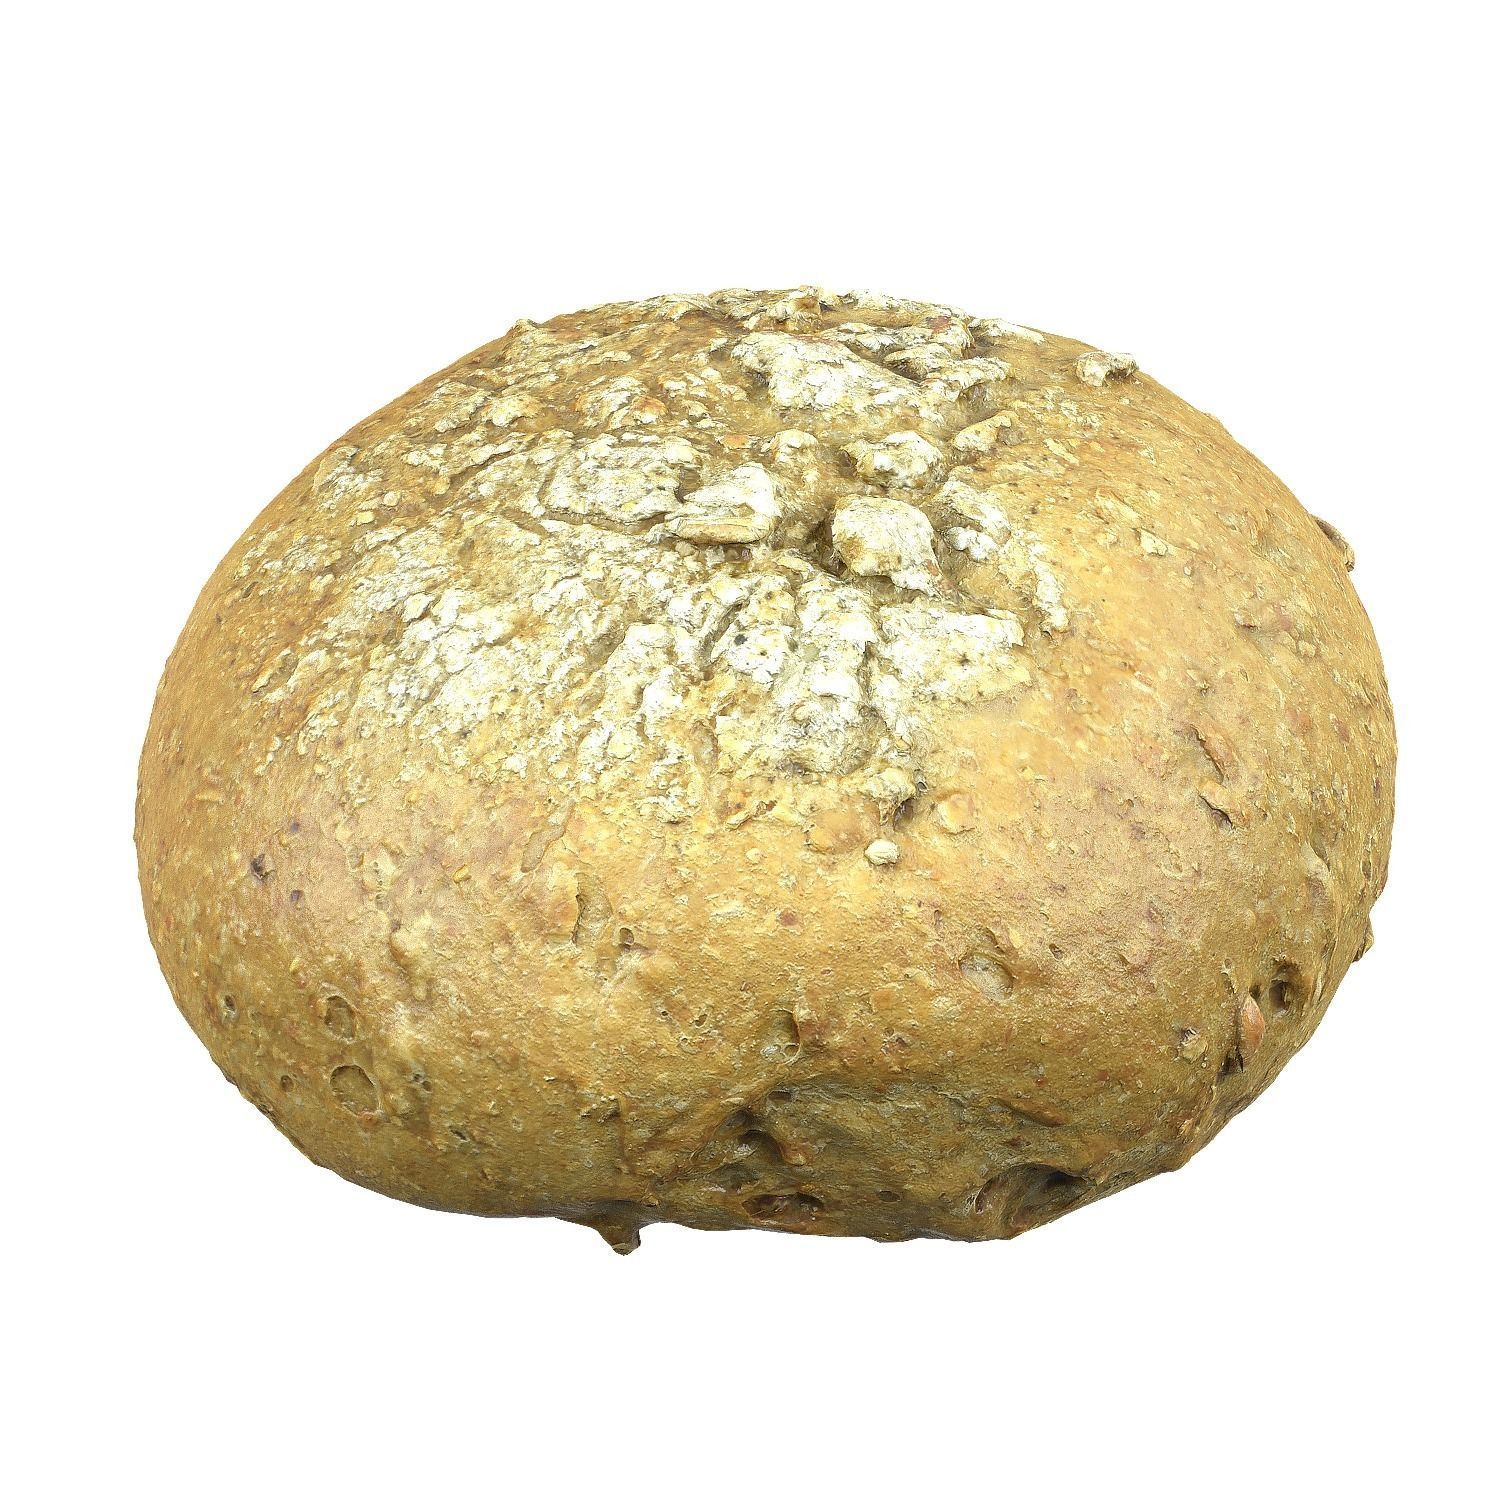 Photorealistic 3D Scanned Rye Bread